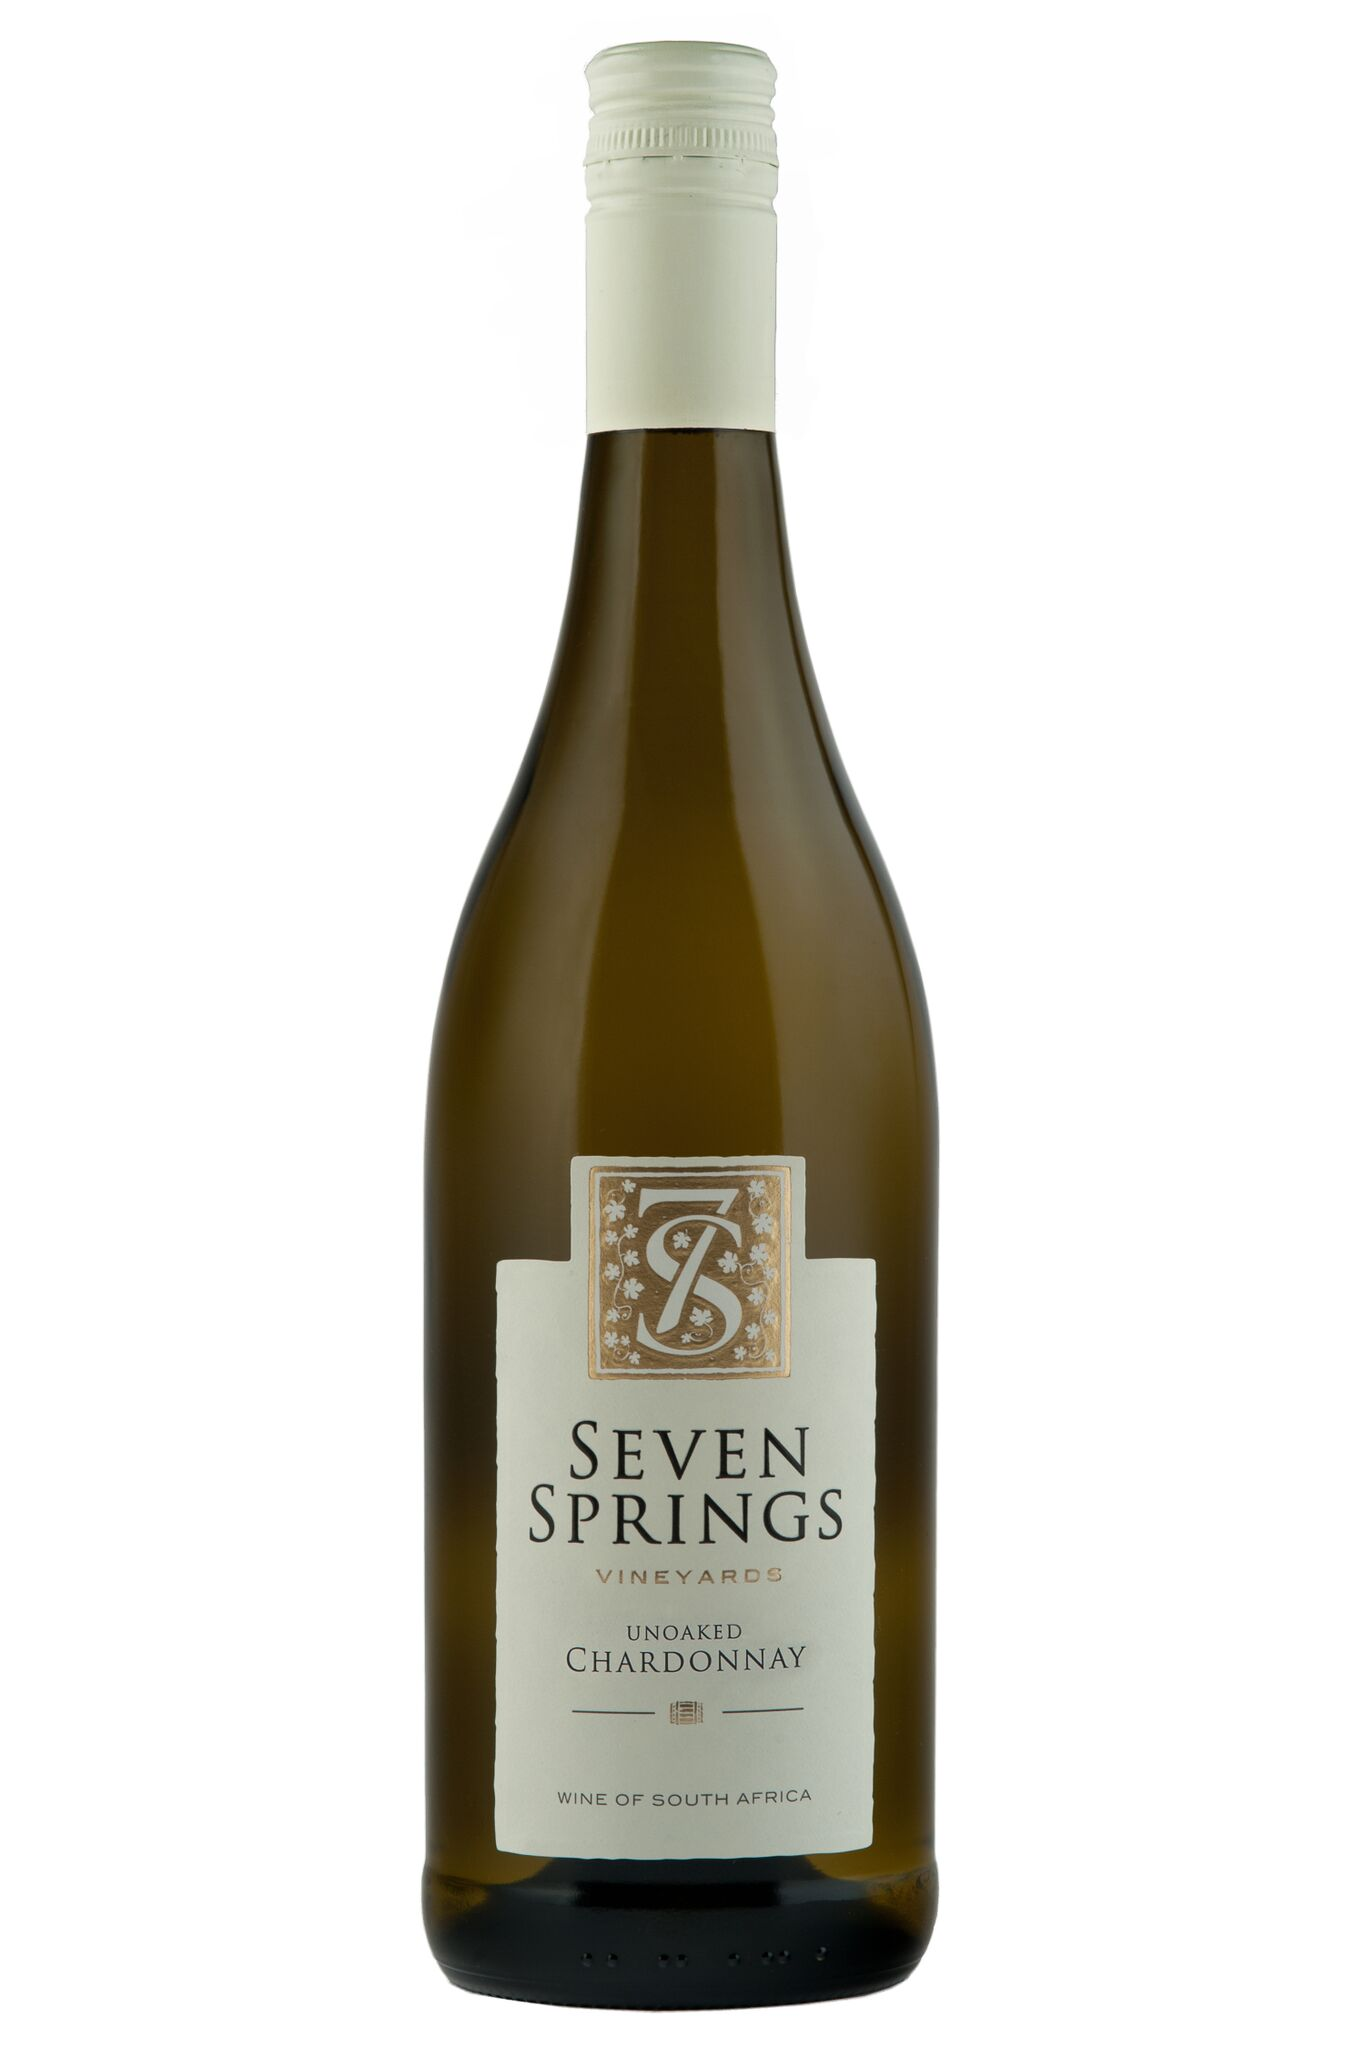 Seven Springs Unoaked Chardonnay